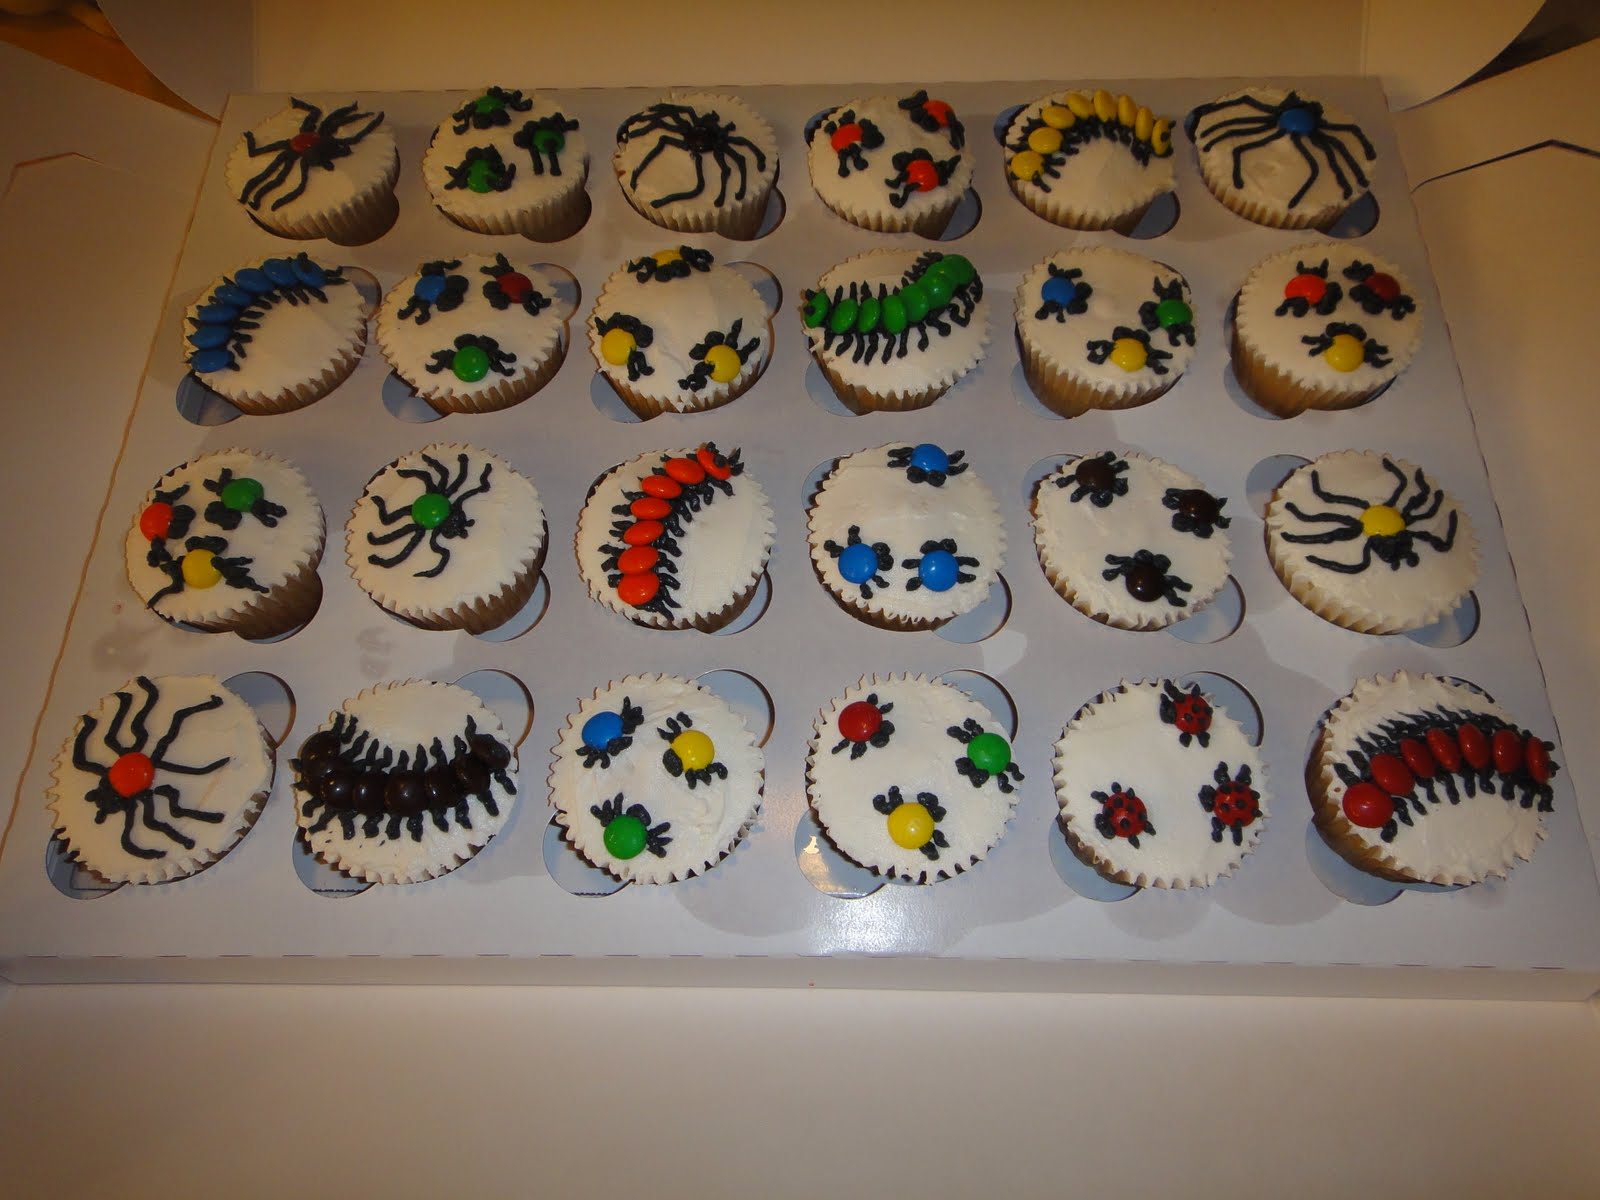 Kims Cakes and Crumbs: Creepy Crawly Bugs!